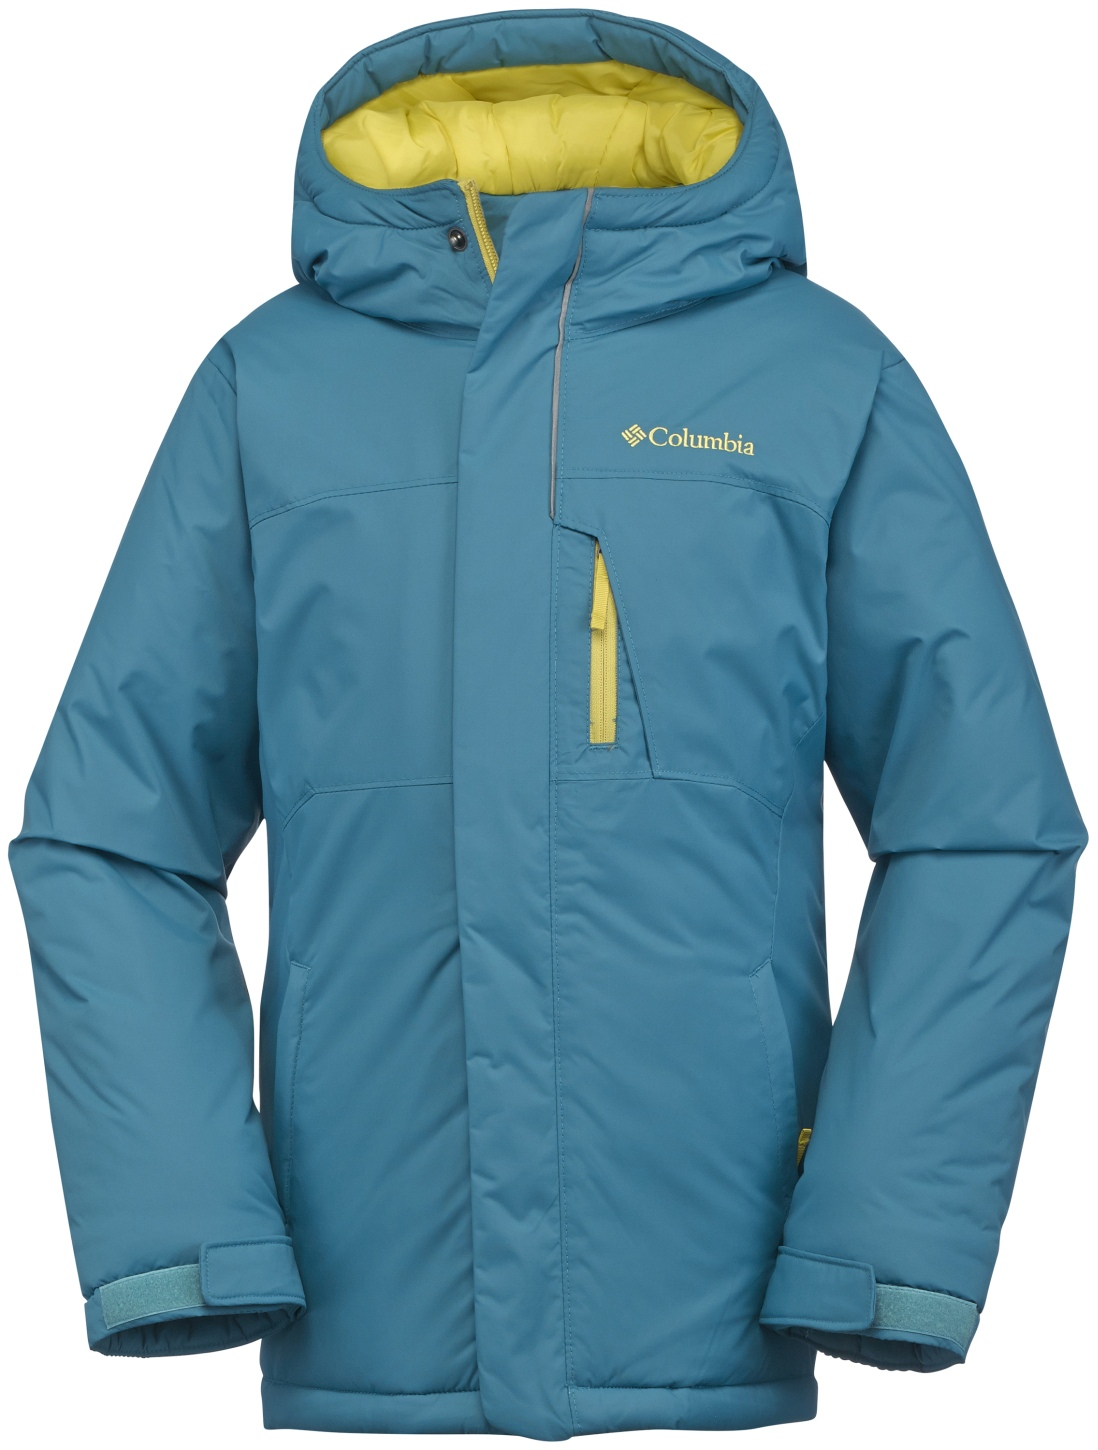 Columbia Boys' Alpine Free Fall Ski Jacket Deep Marine, Mineral Yellow-30